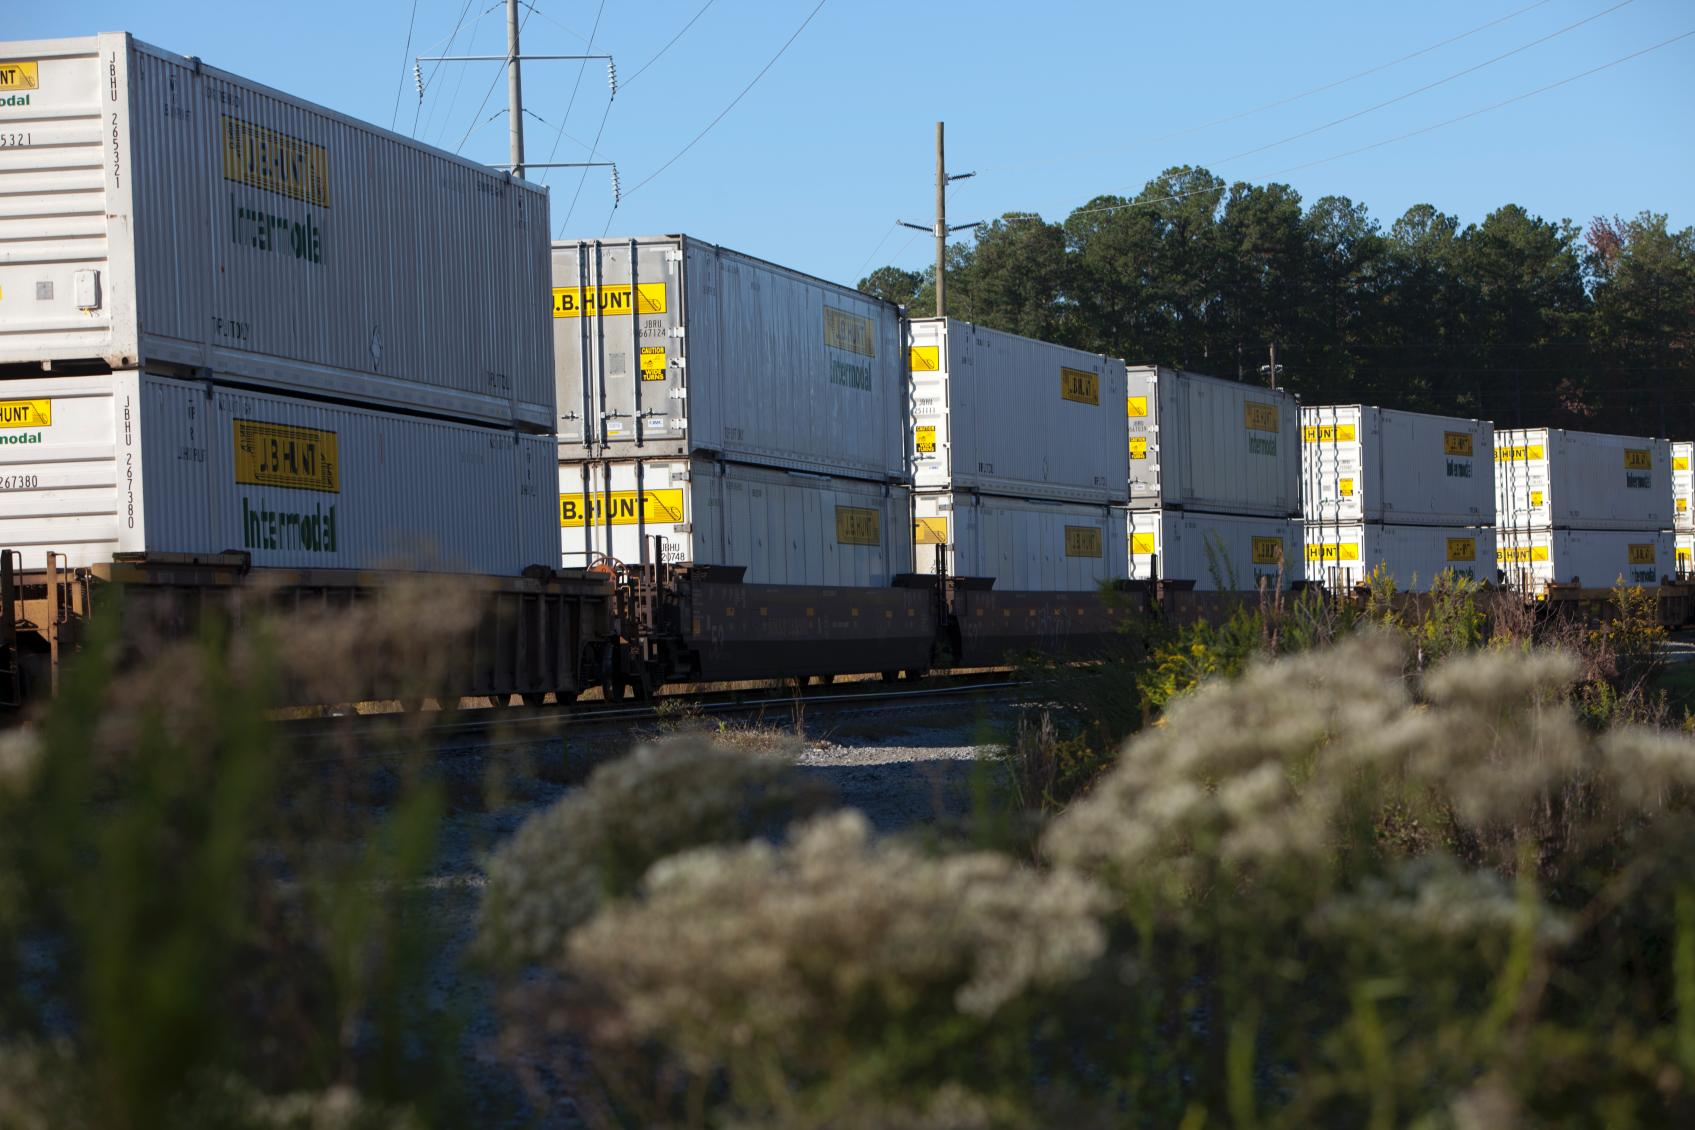 at jb hunt we like to stay ahead of the curve thats why we were one of the first to utilize railroads for intermodal transportation and continue to